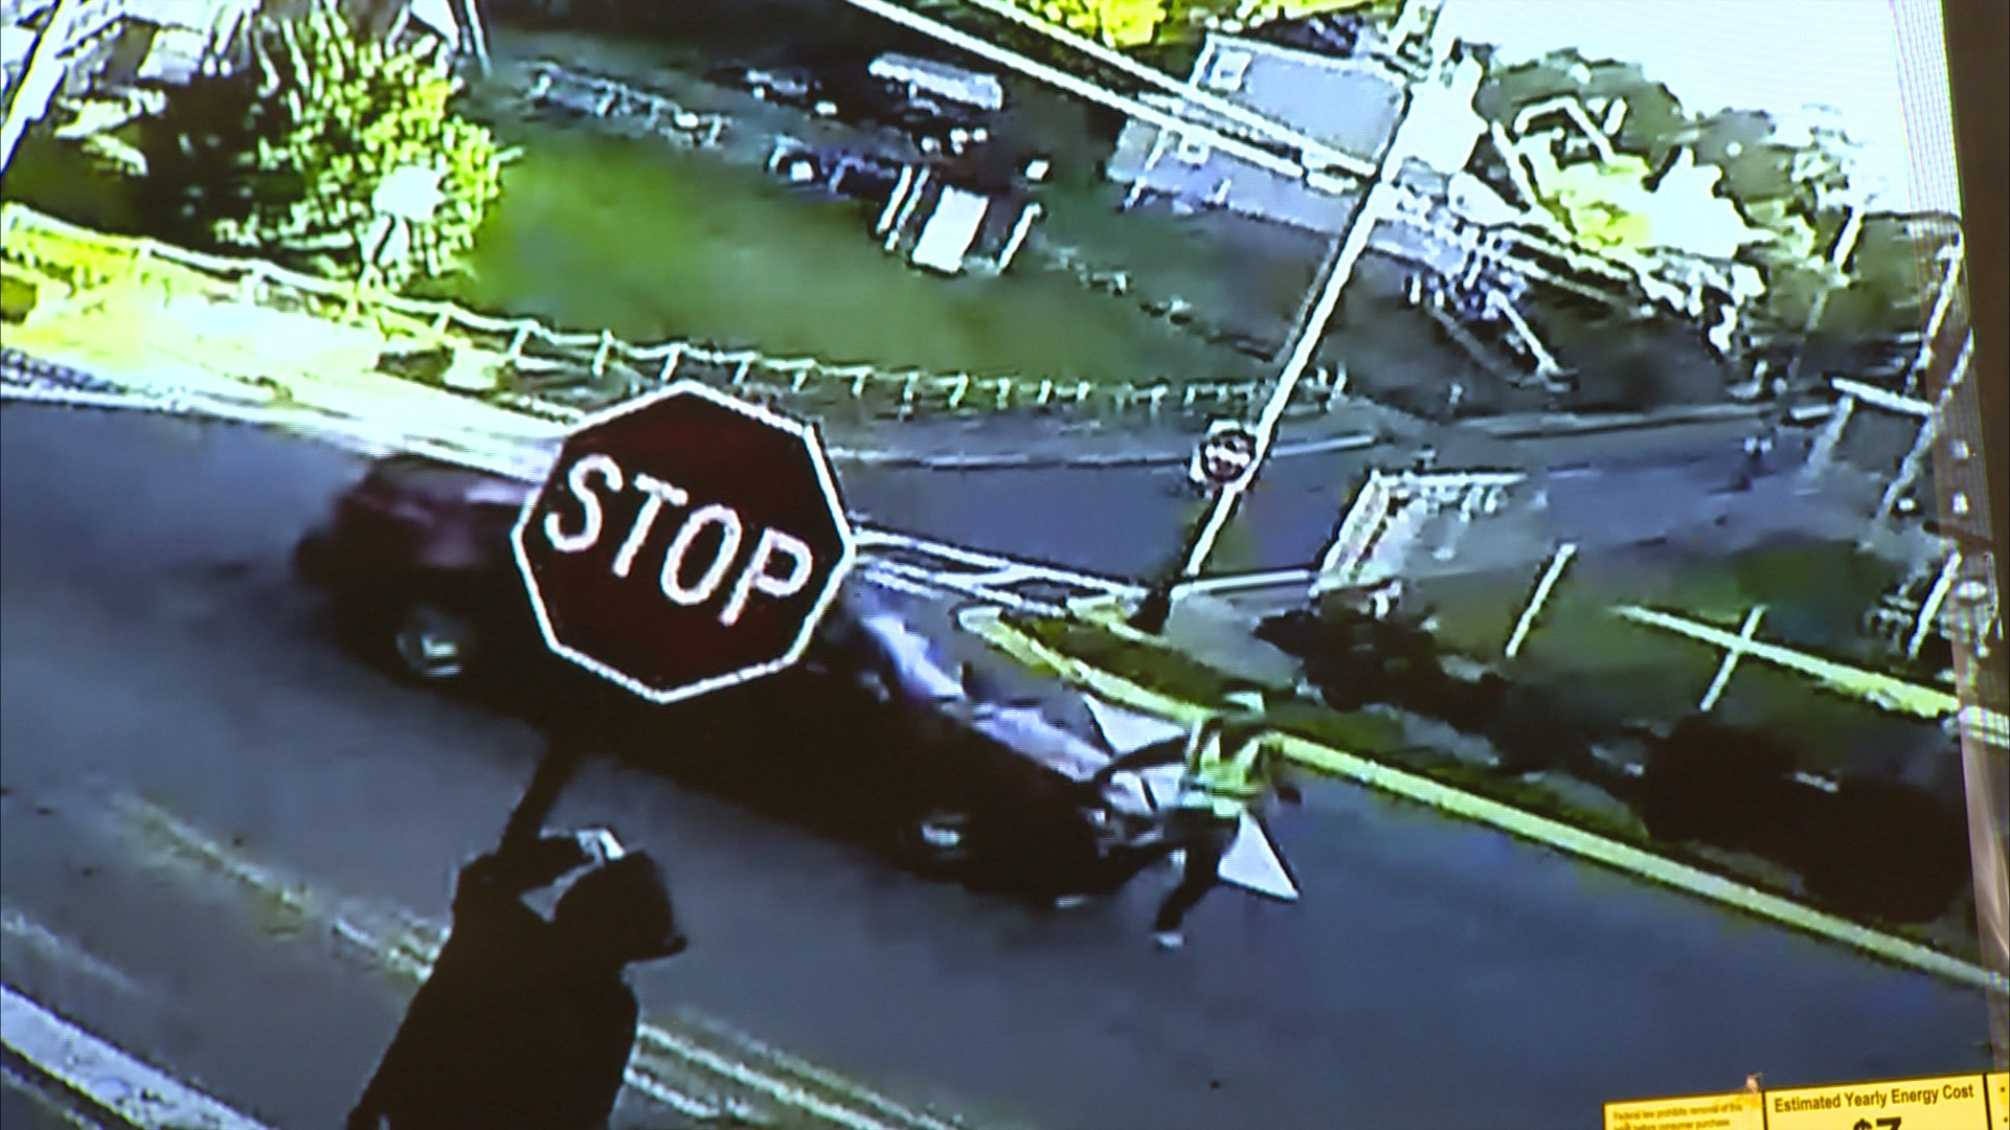 This surveillance video image shows a vehicle hitting a crossing guard.